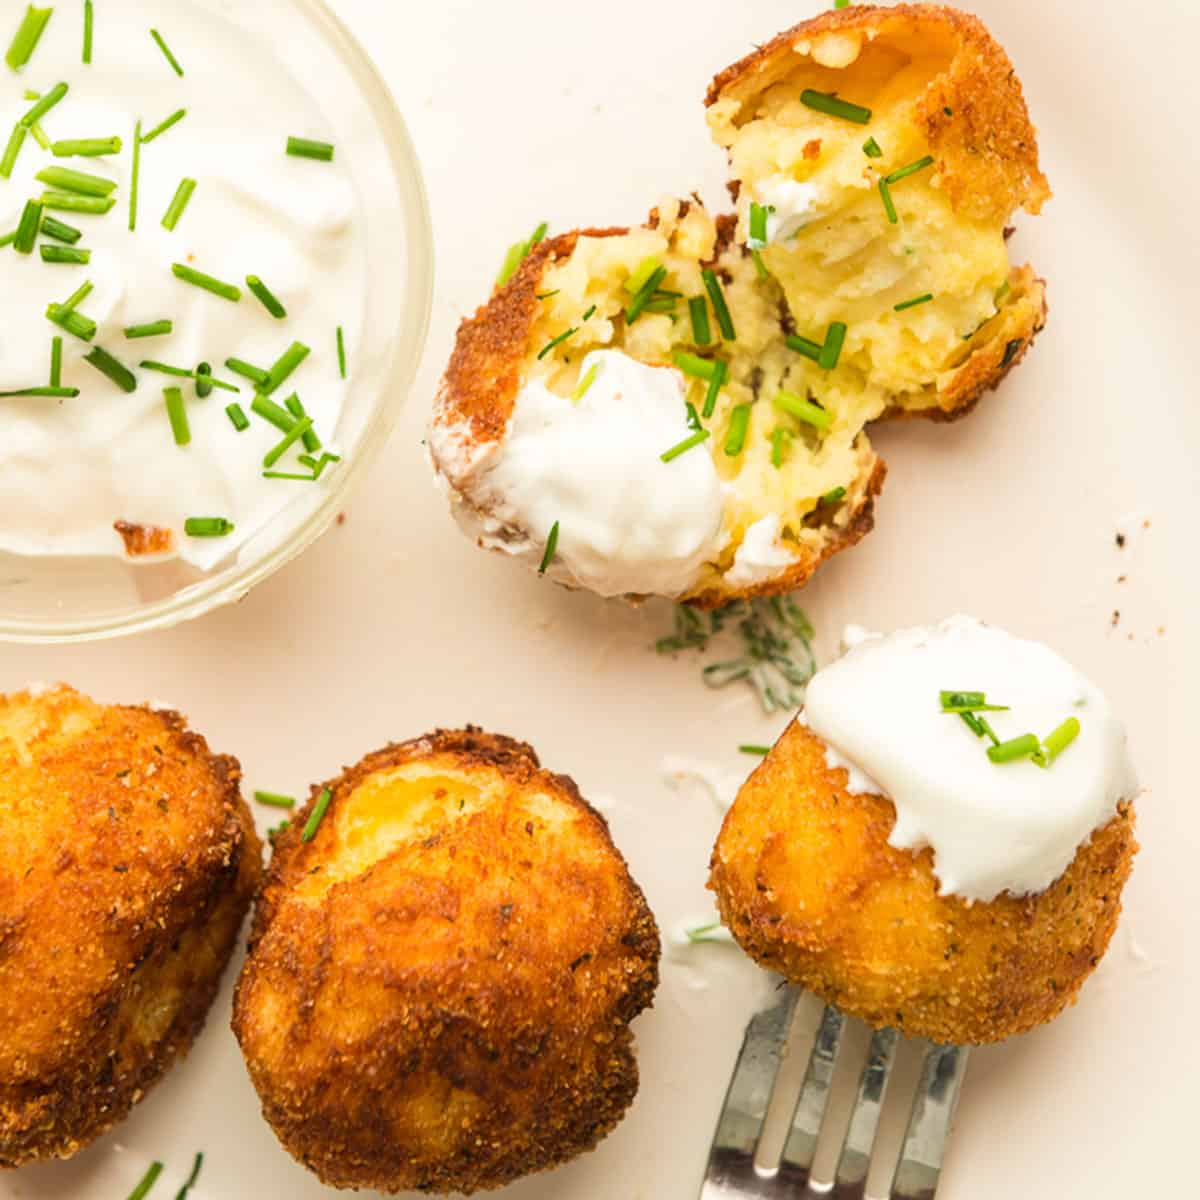 A plate of potato croquettes with sour cream.